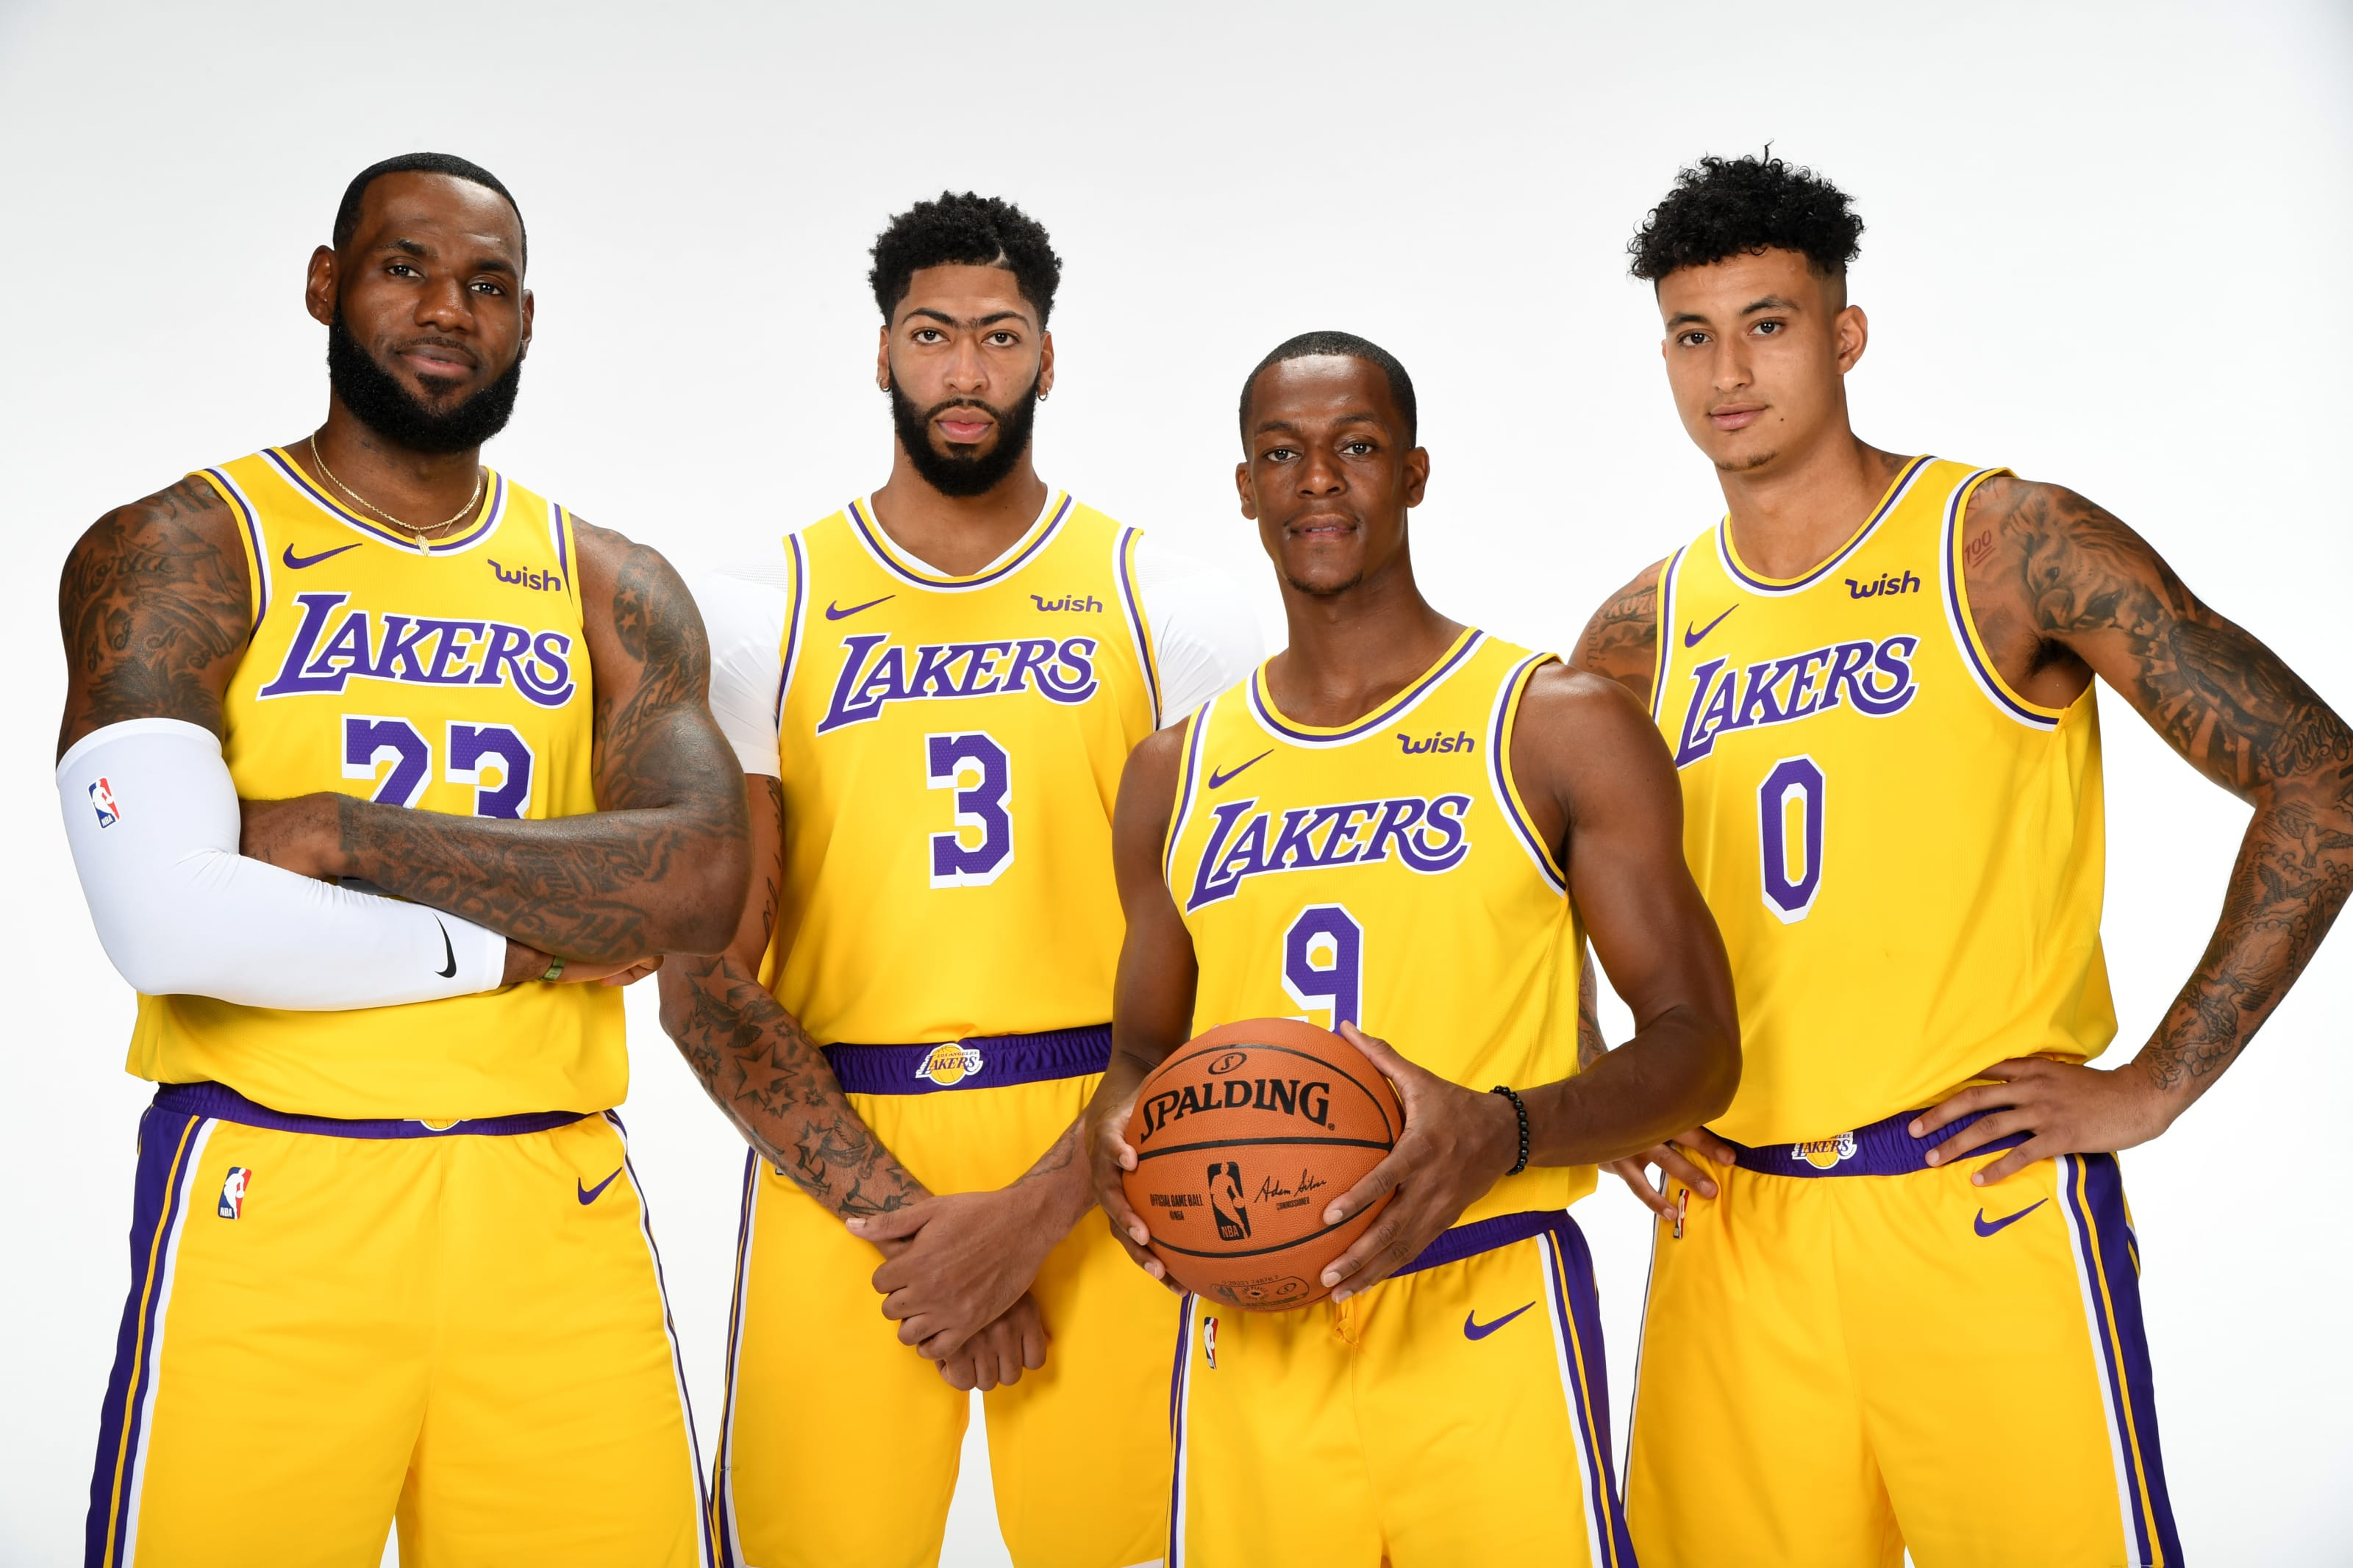 Los Angeles Lakers 3 Statistics That Show They Are Better Than The Clippers